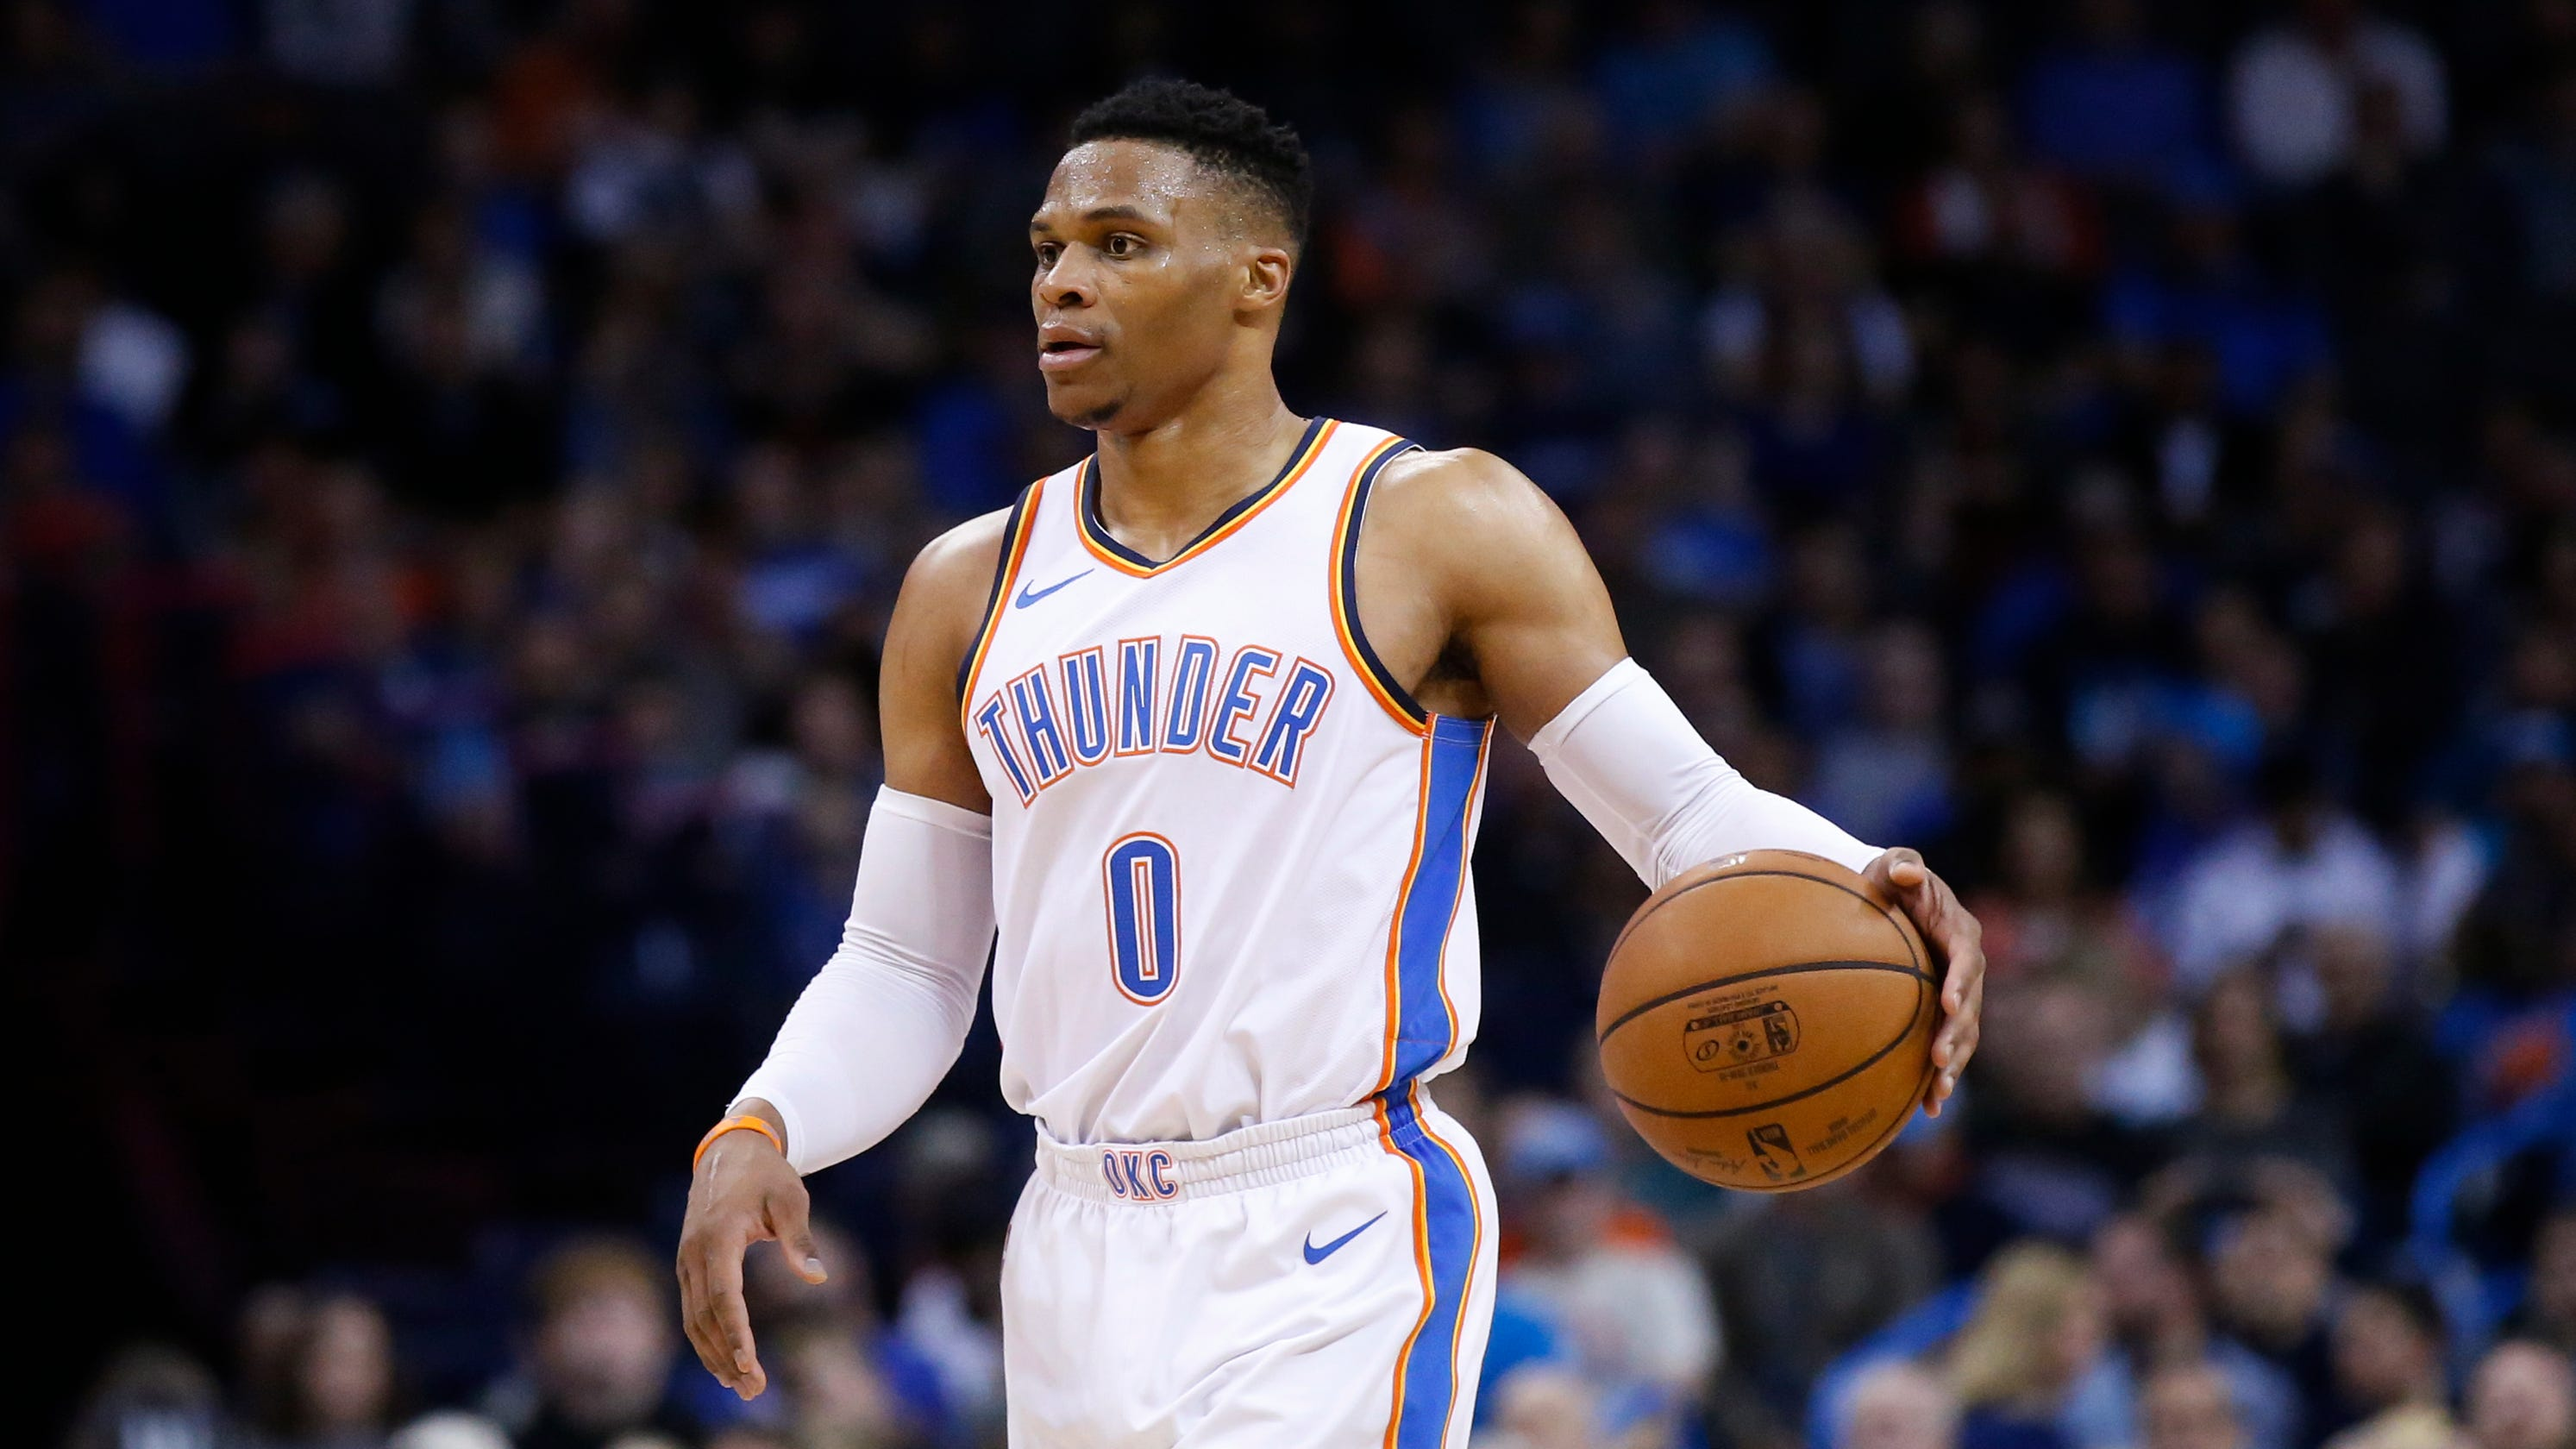 Five moves that hit, missed during Troy Weaver's Thunder tenure